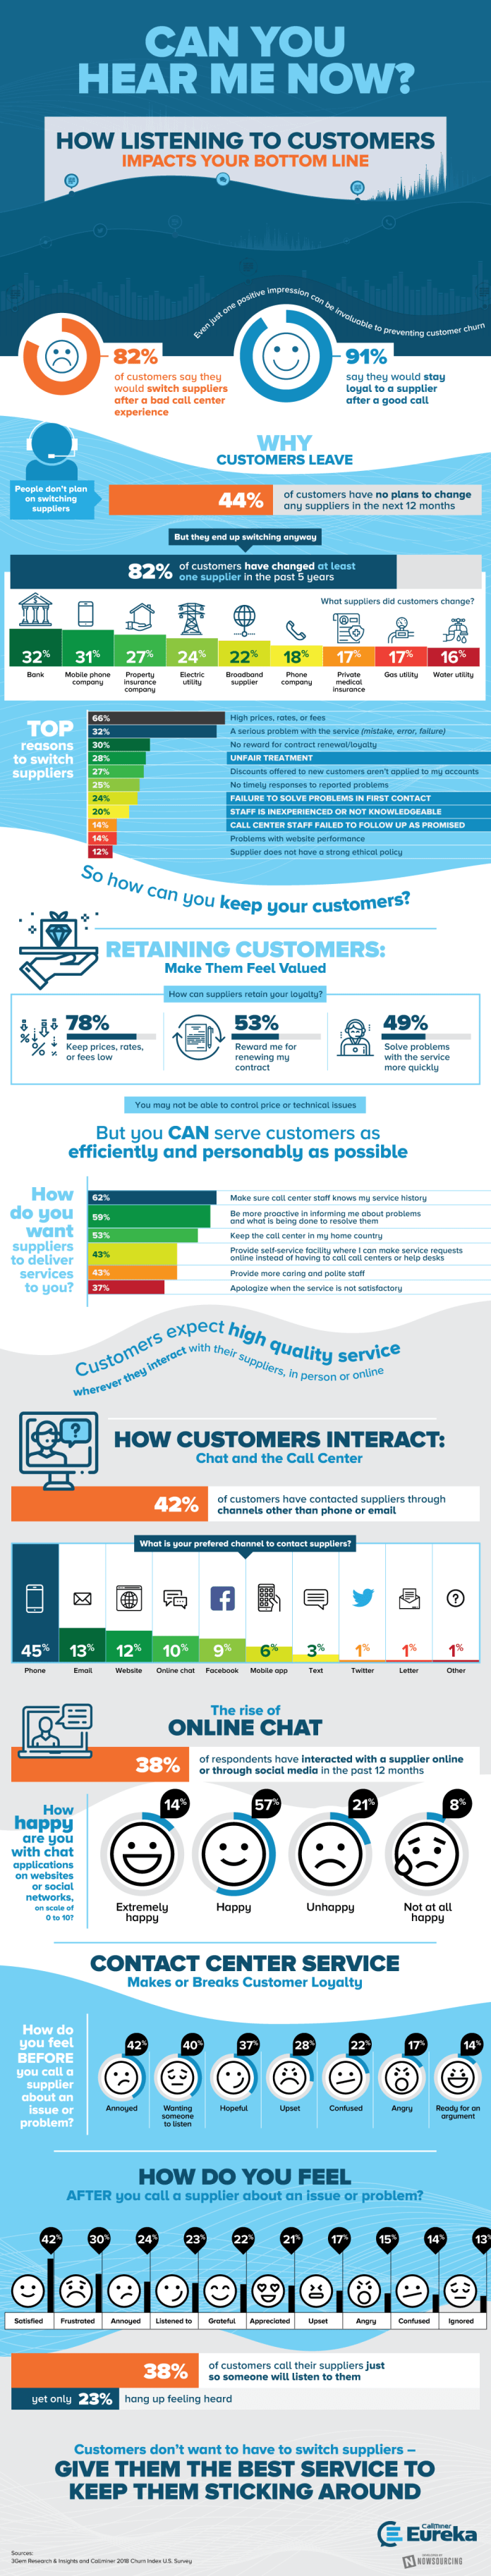 Listening Is The Key To Retaining Customers 1